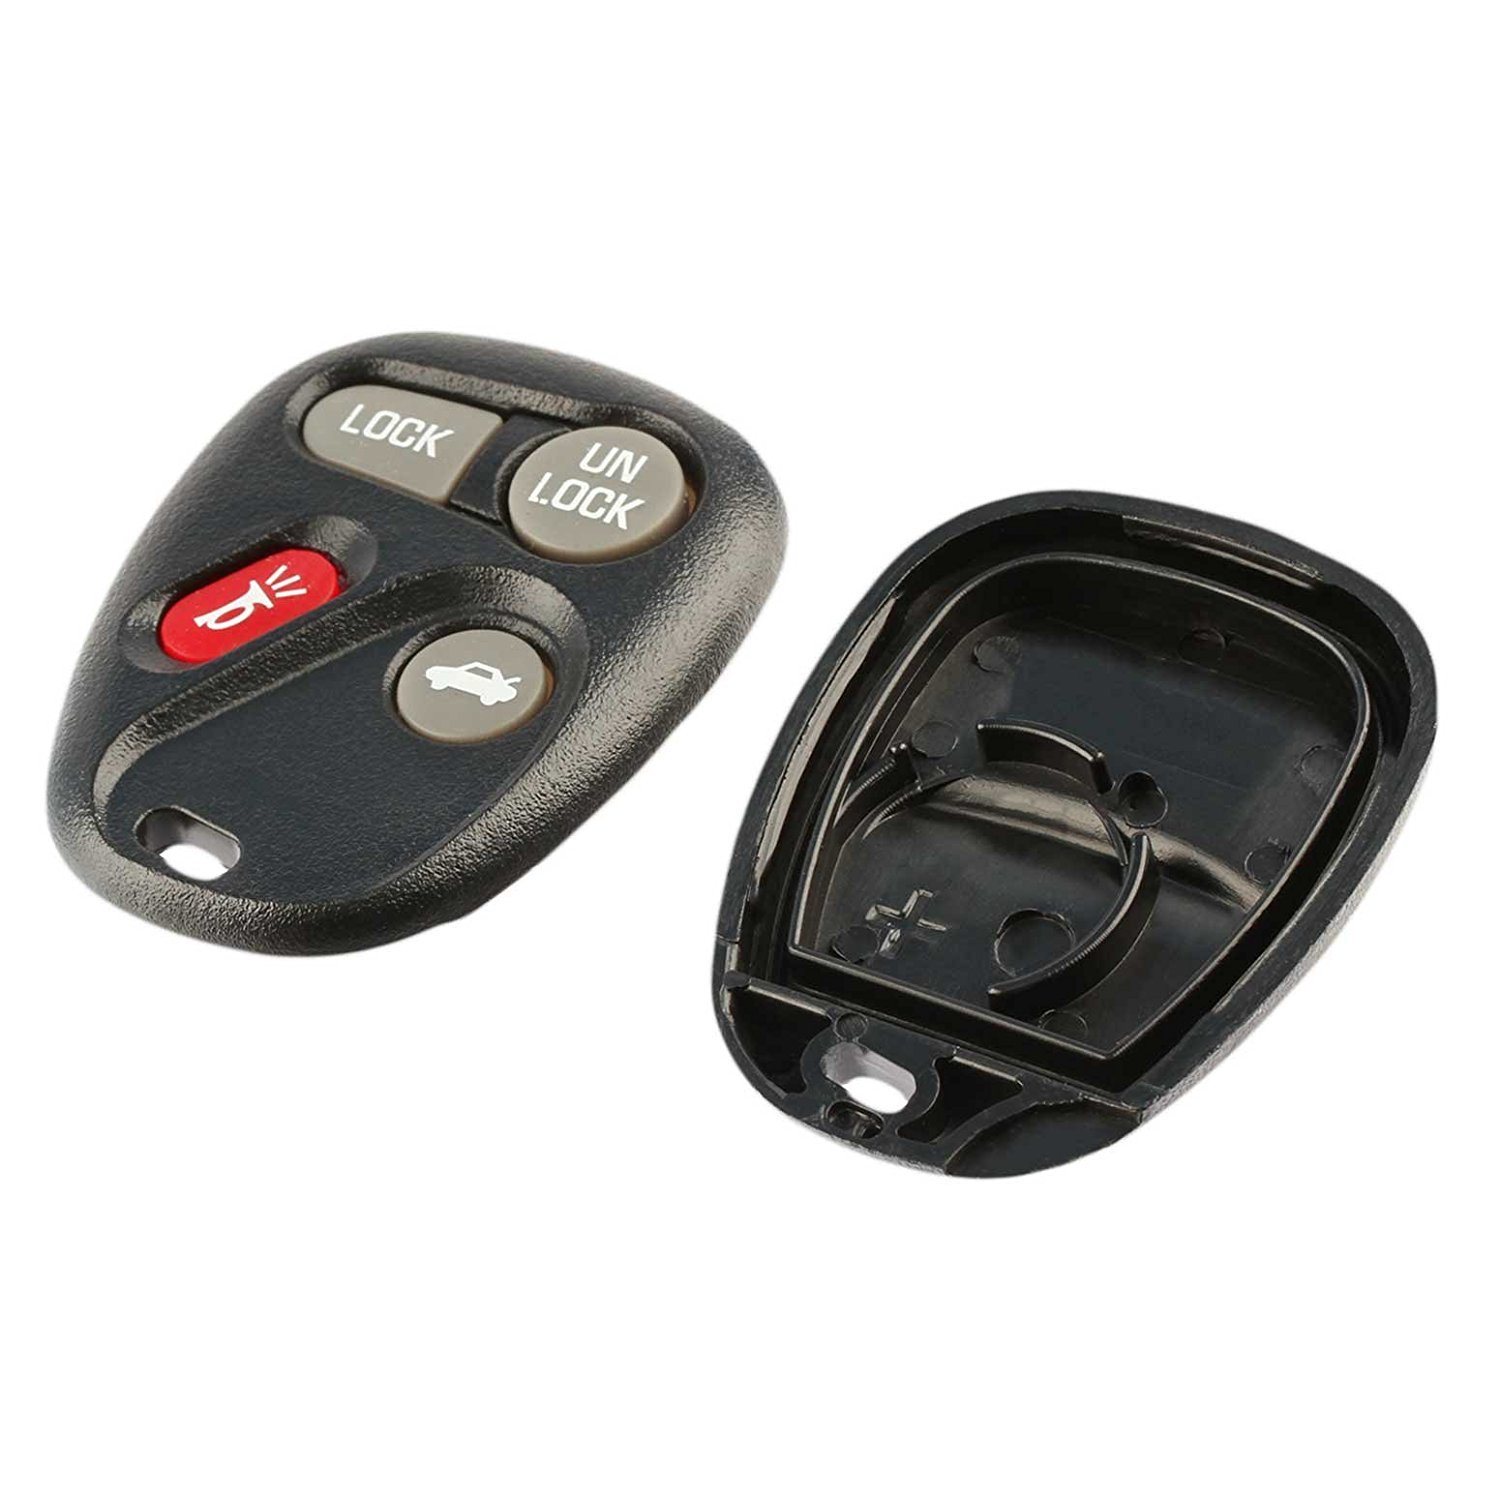 Set of 2 USARemote Key Fob Keyless Entry Remote Shell Case /& Pad fits Chevy 1997-2000 venture//Oldsmobile 1997-2001 Silouette//Pontiac 1999-2001 Montana//1997-1998 Transport